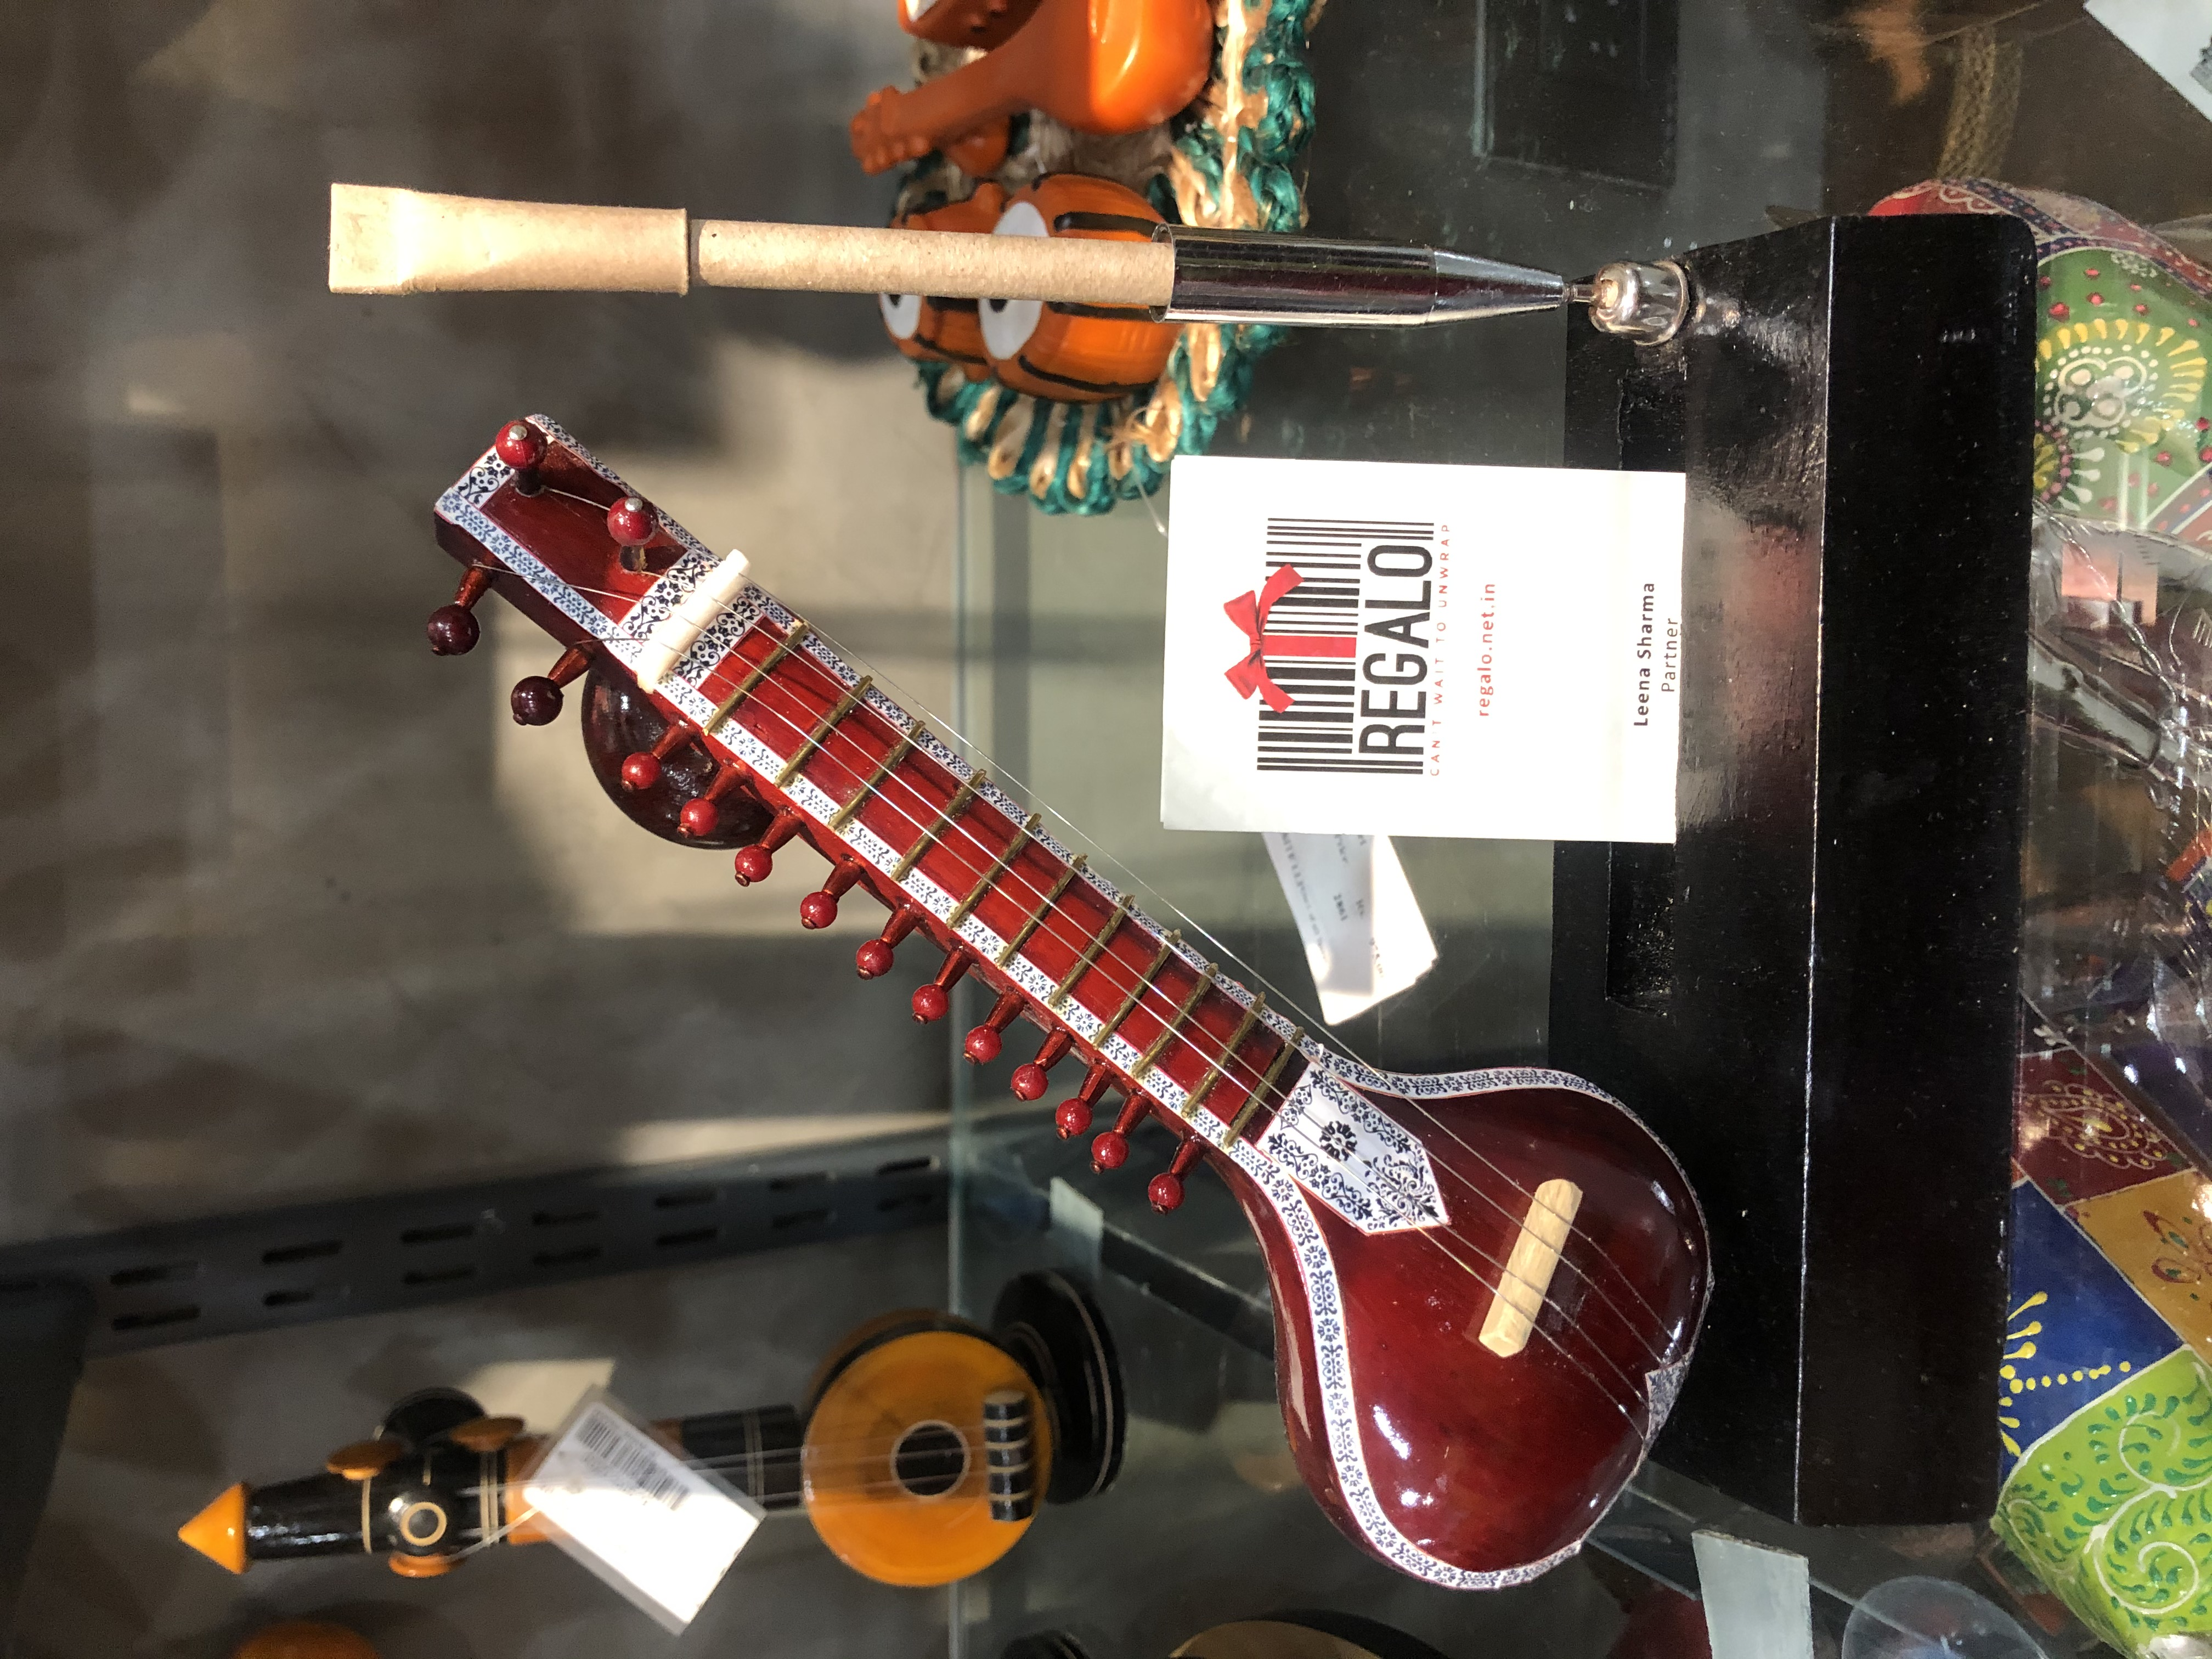 Music (instruments) pen stand